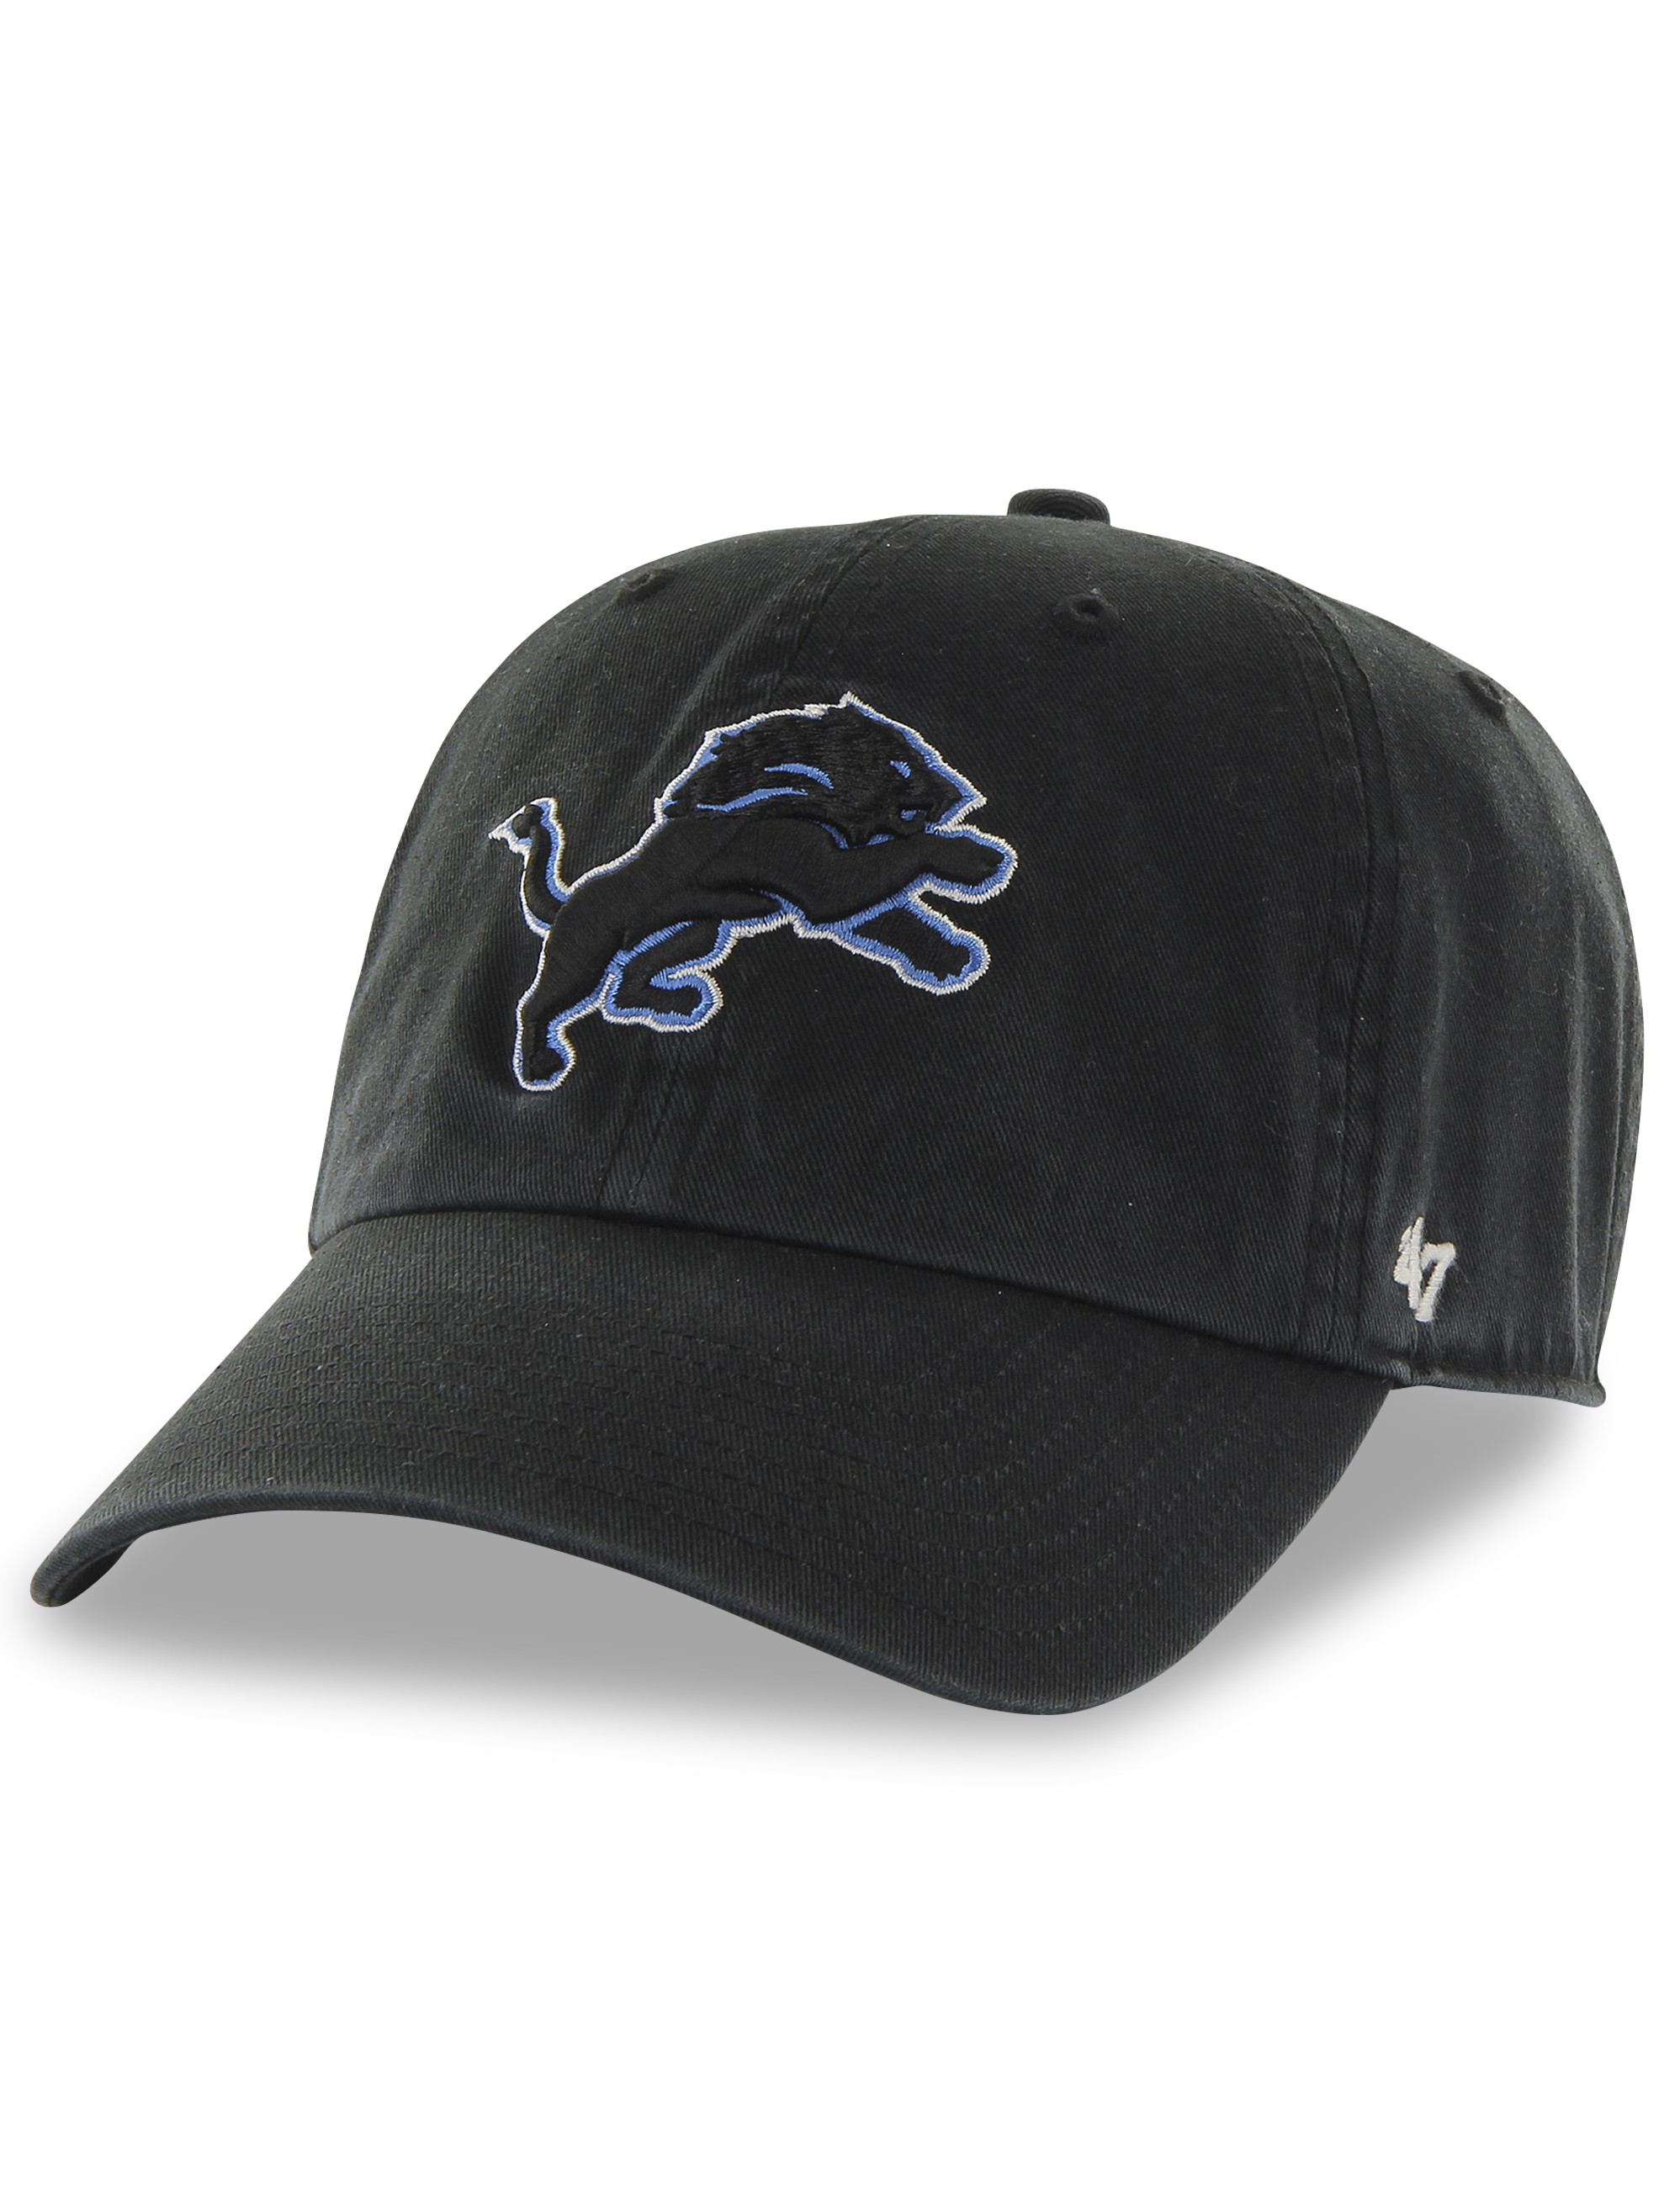 '47 Brand NFL Detroit Lions Clean Up Baseball Cap